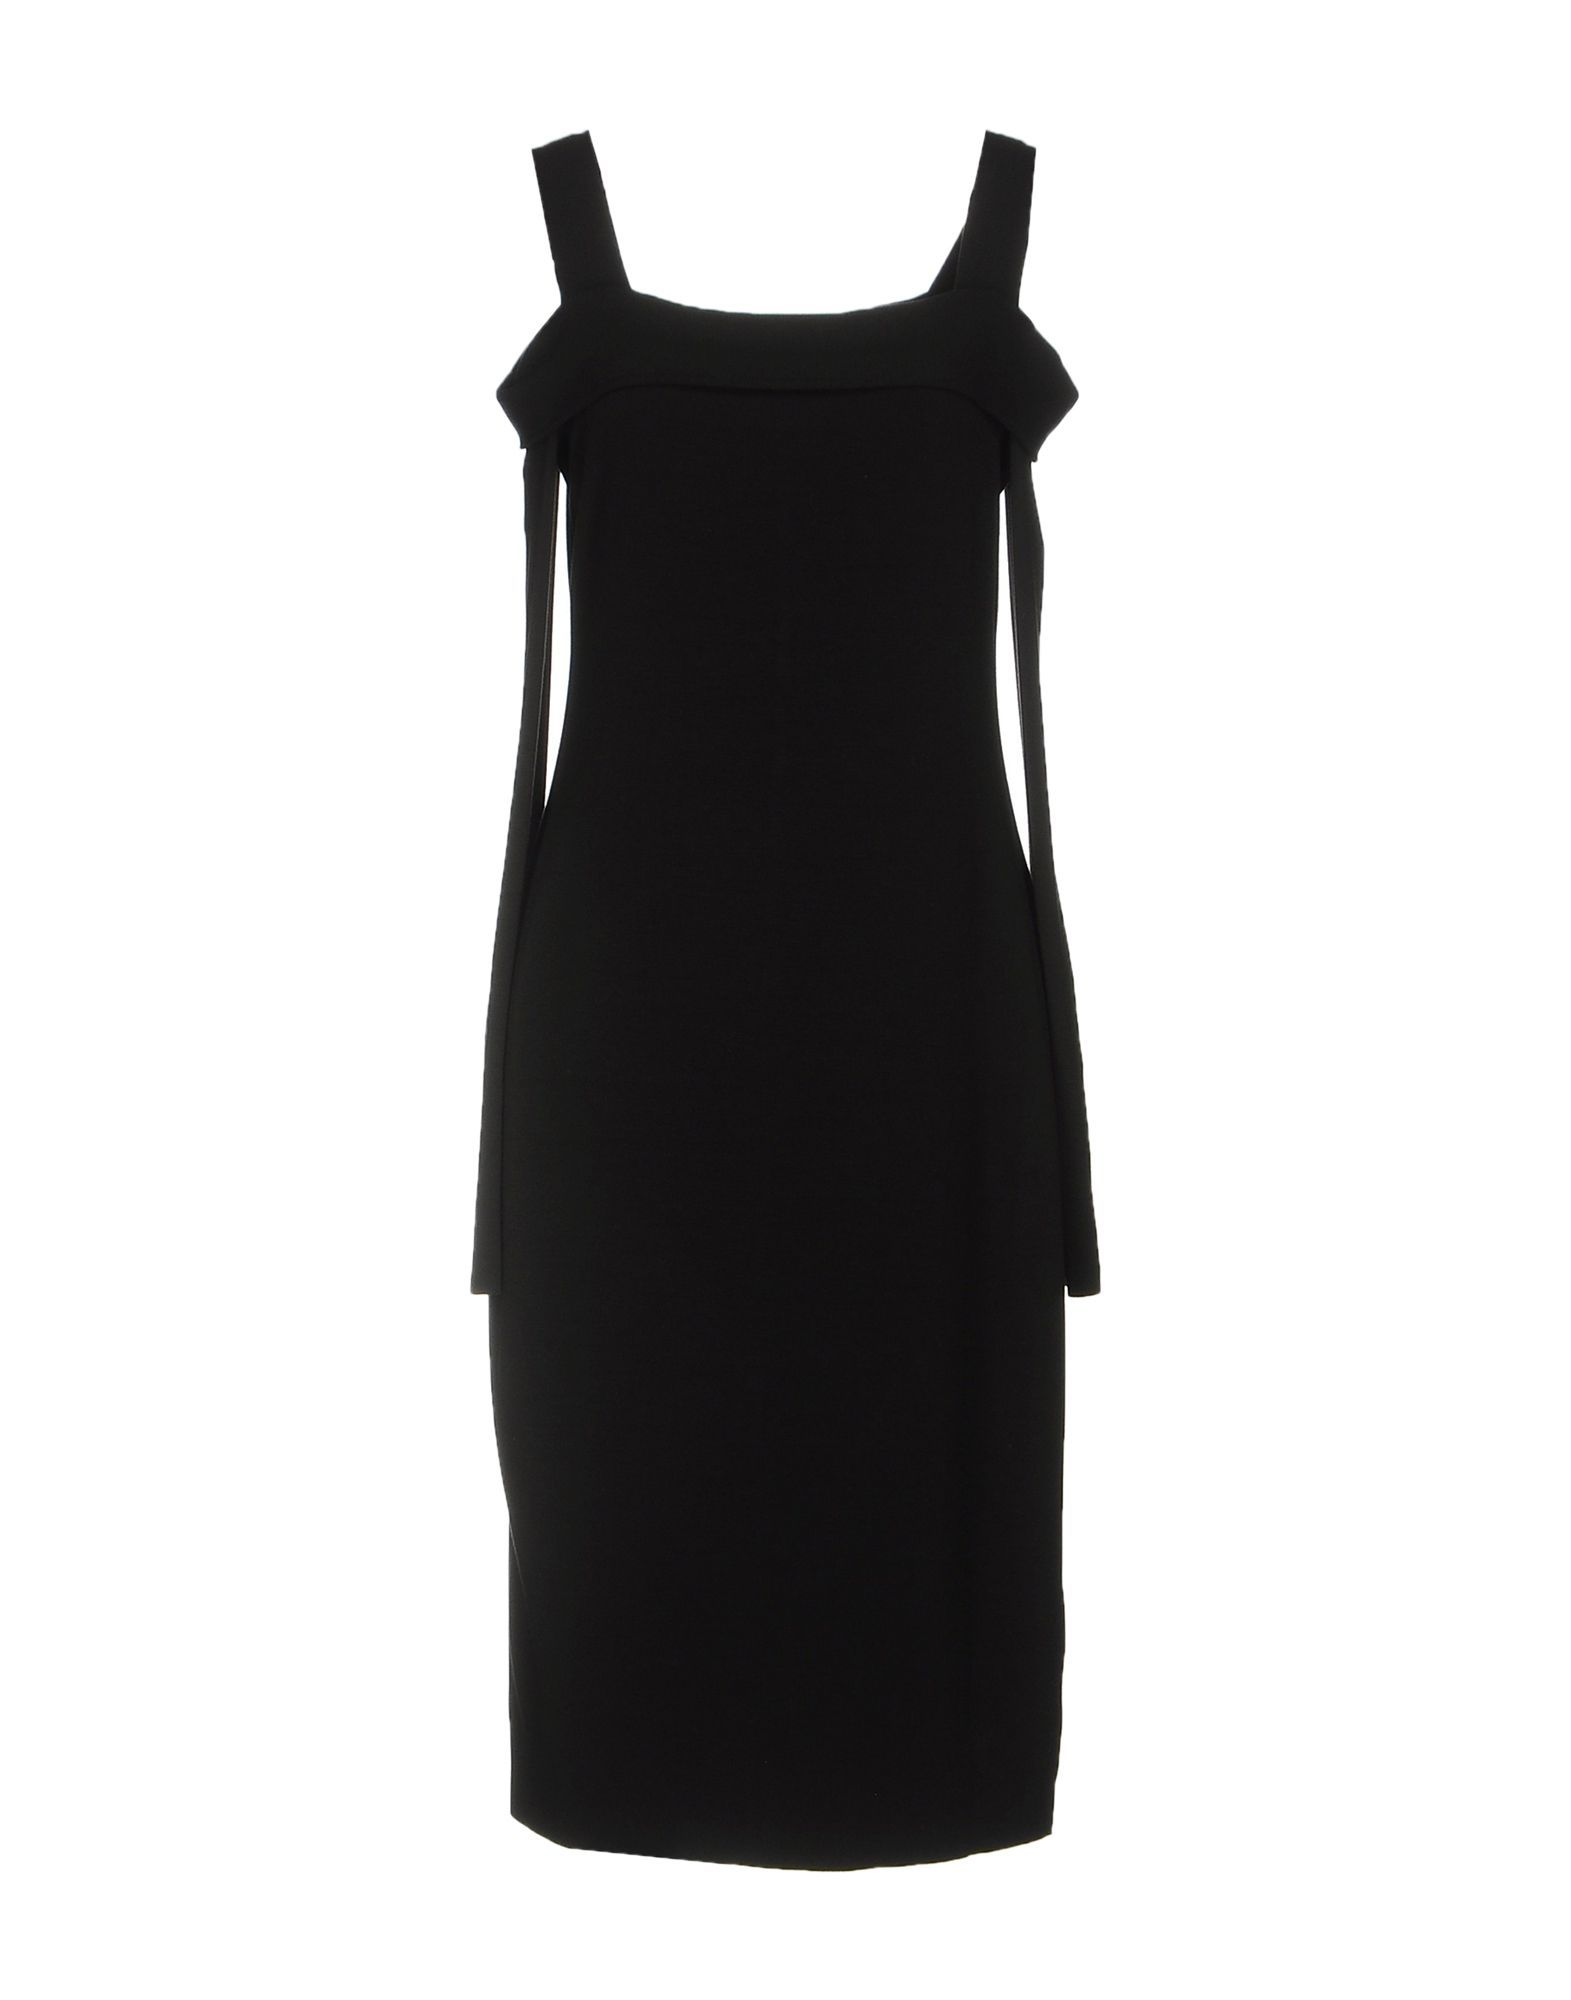 Elie Tahari Black Dress